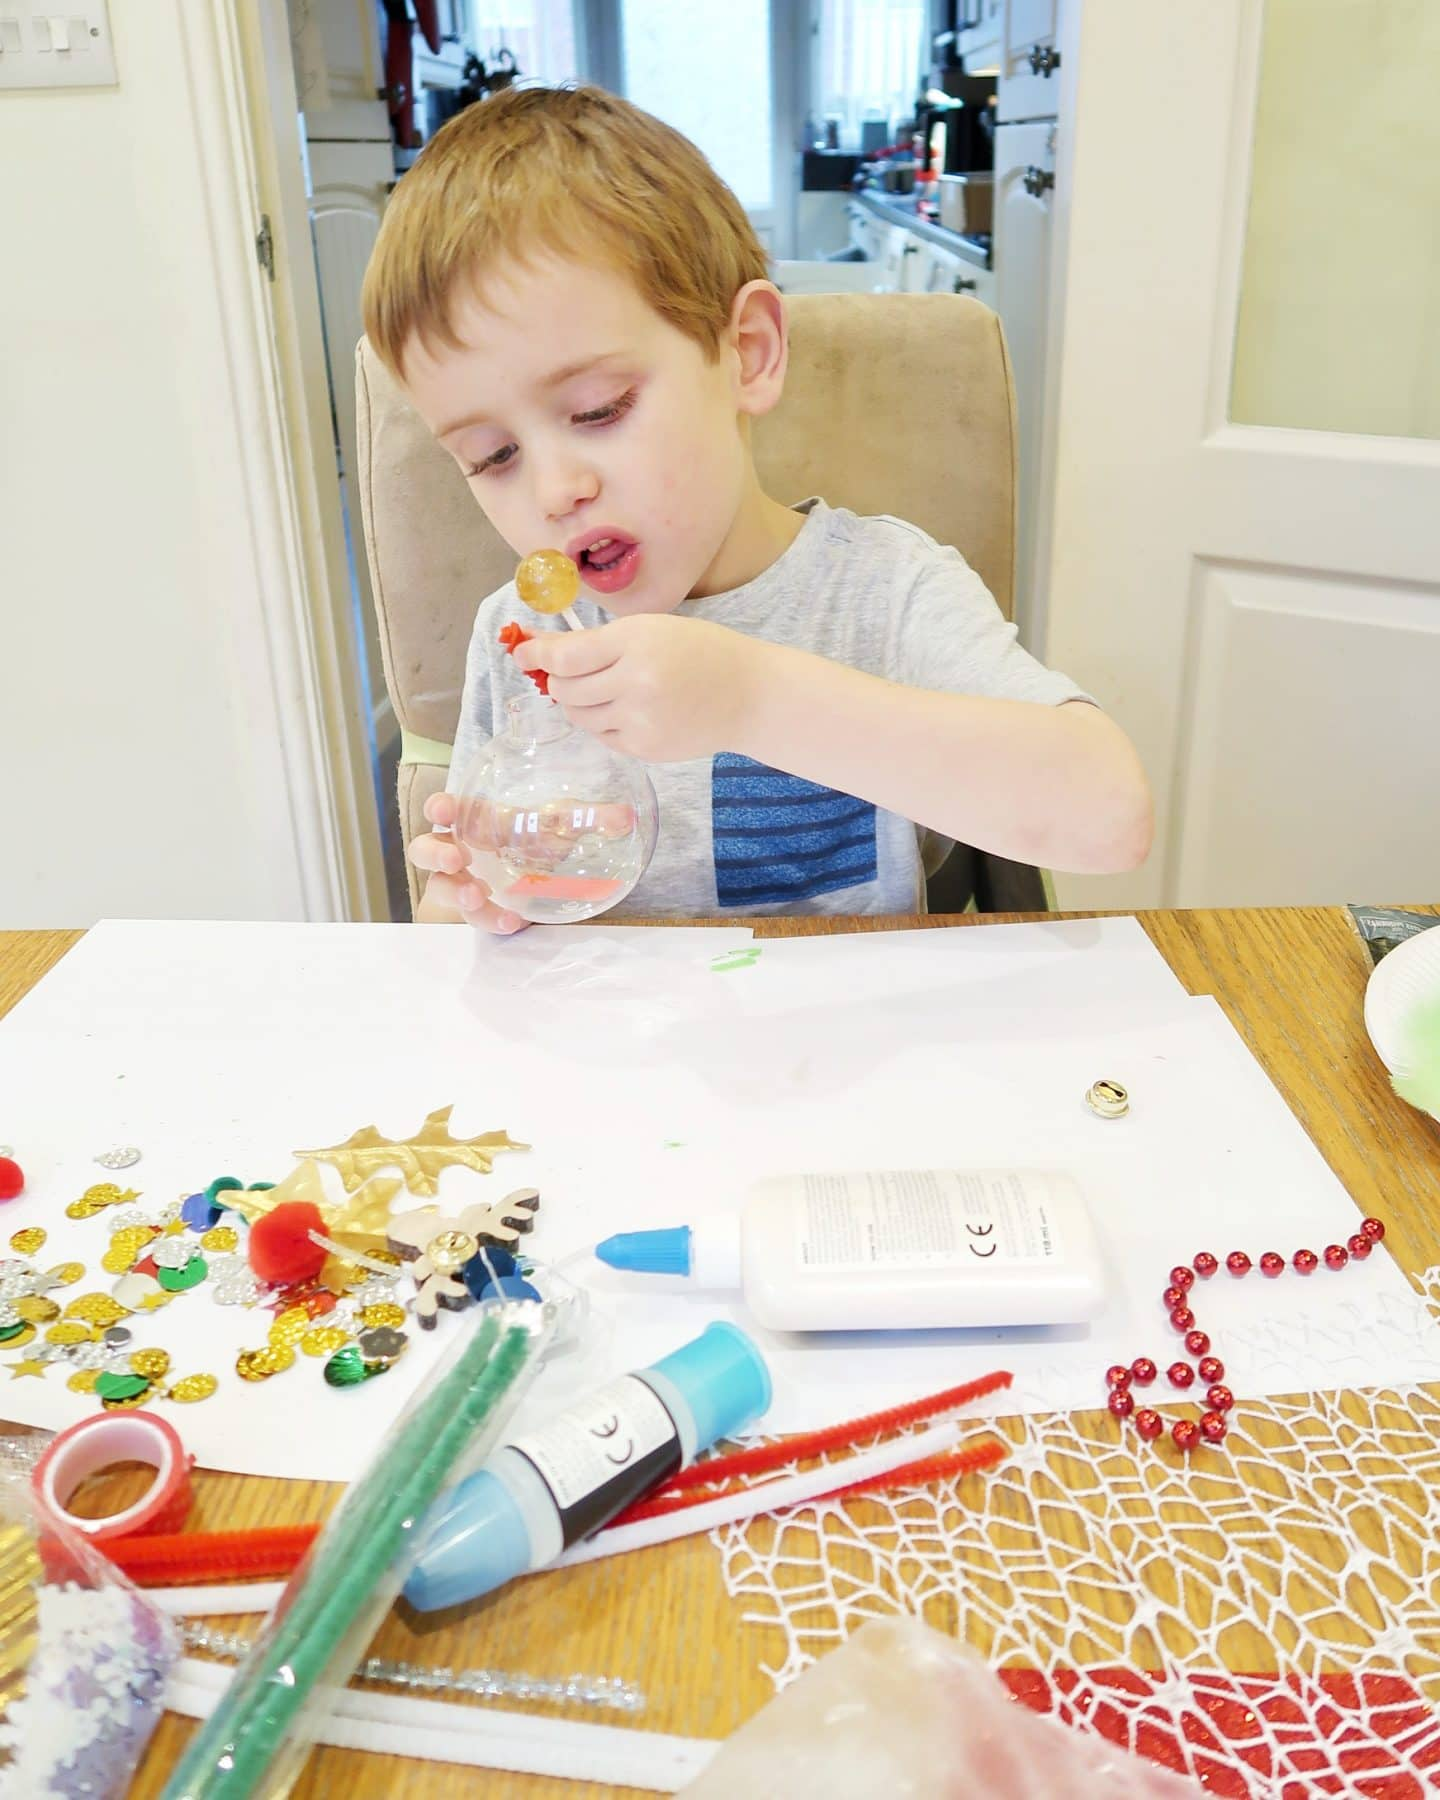 A small boy putting items into a clear plastic bauble - sensory bauble craft